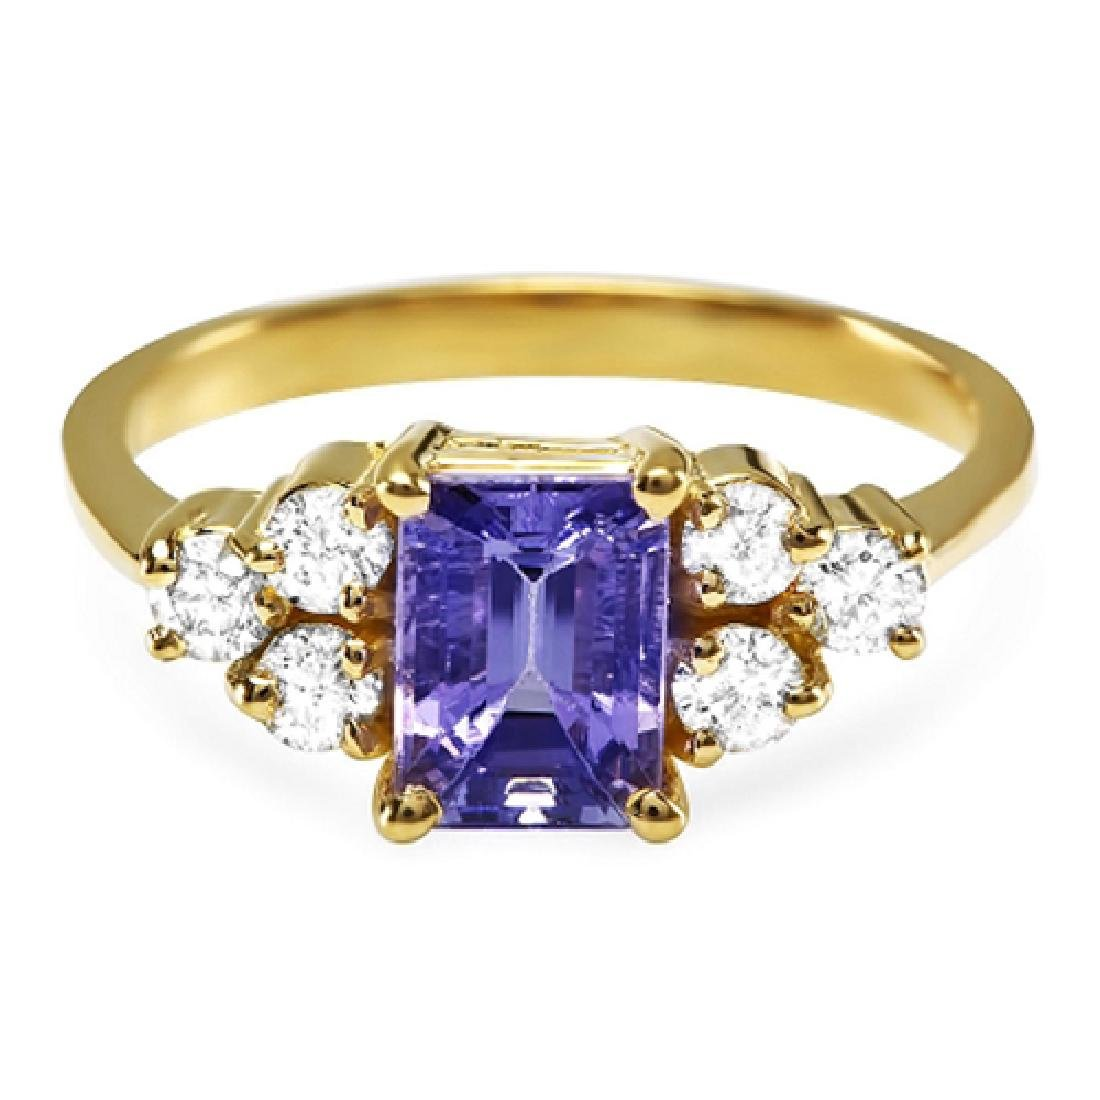 1.70 Carat Natural Tanzanite 18K Solid Yellow Gold